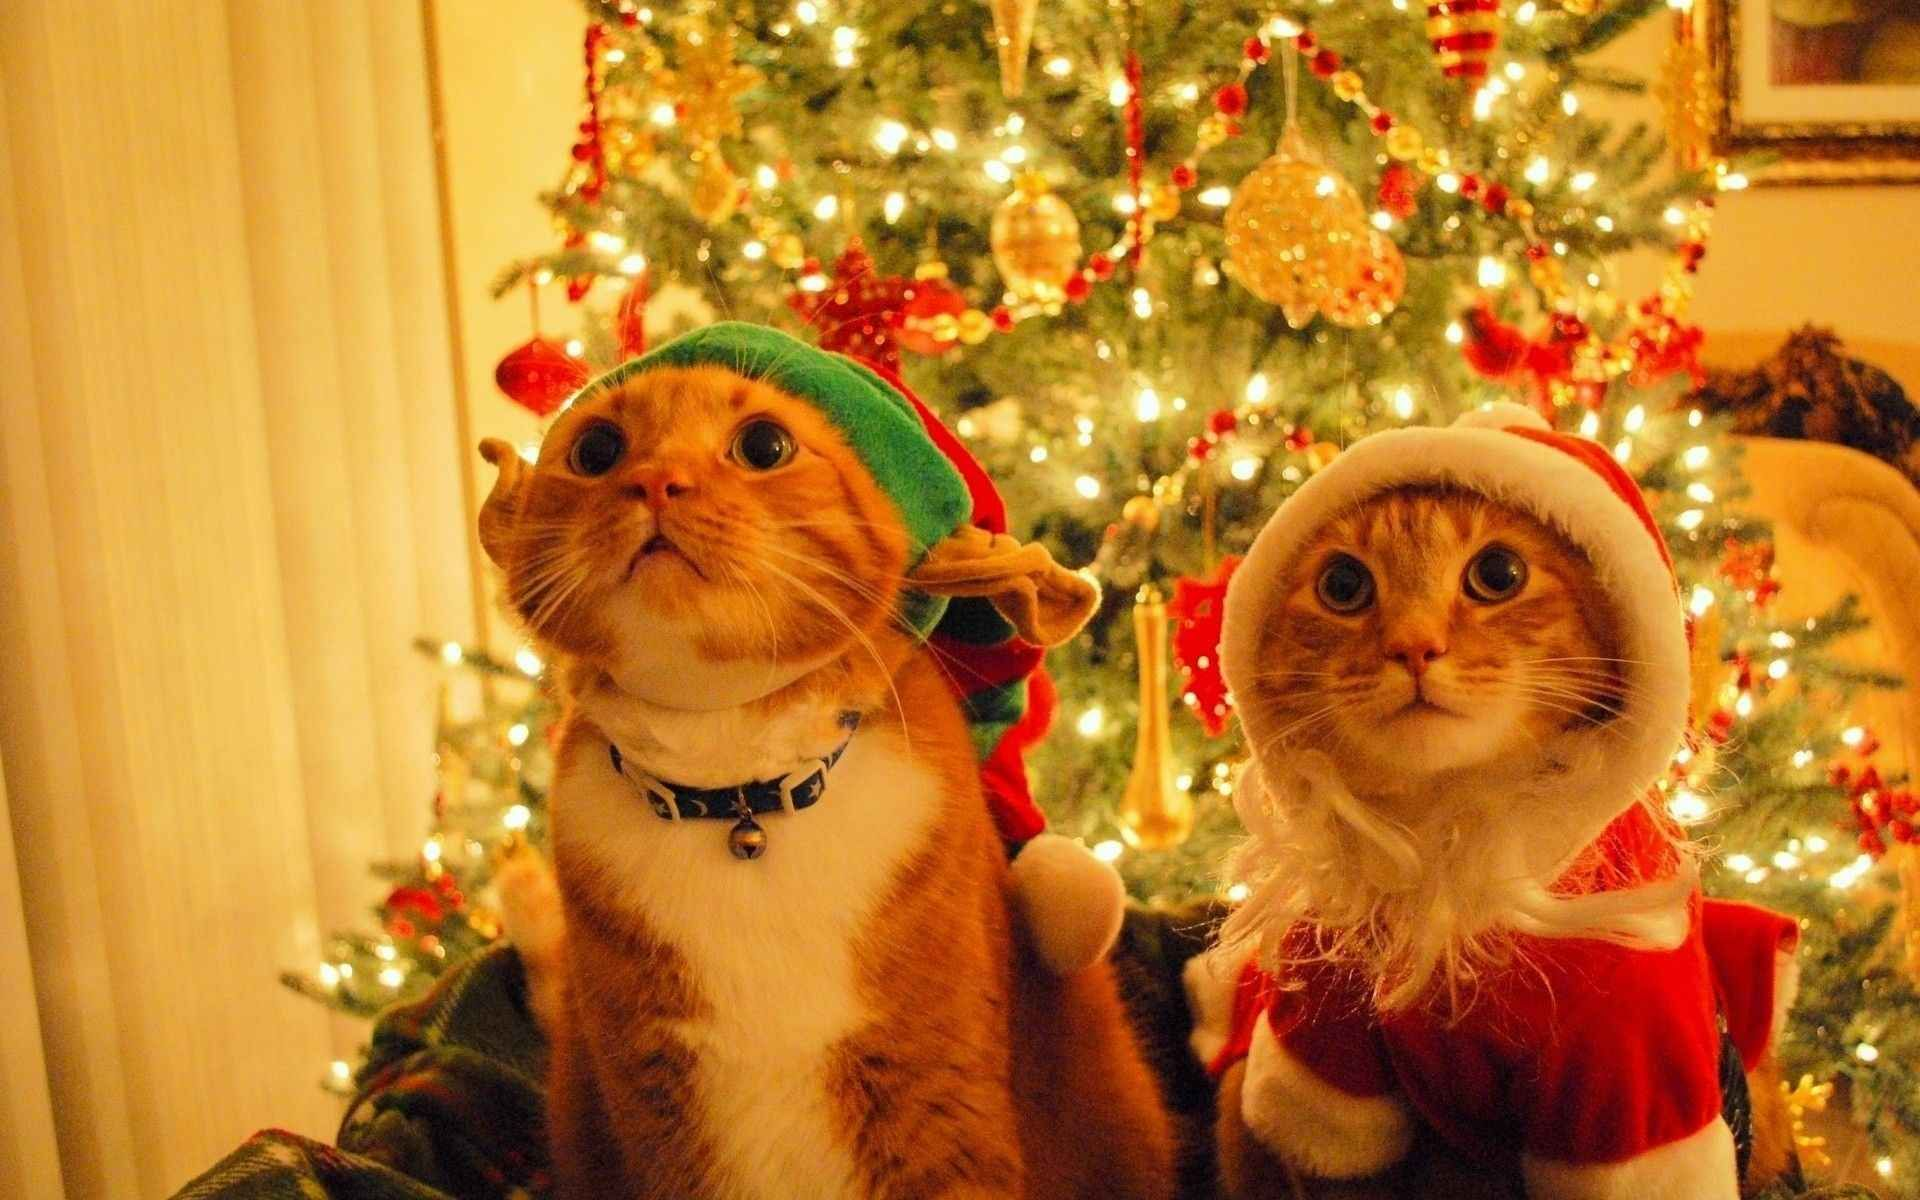 Two Cats Merry Christmas Wallpaper Free Downlo 10642 Wallpaper